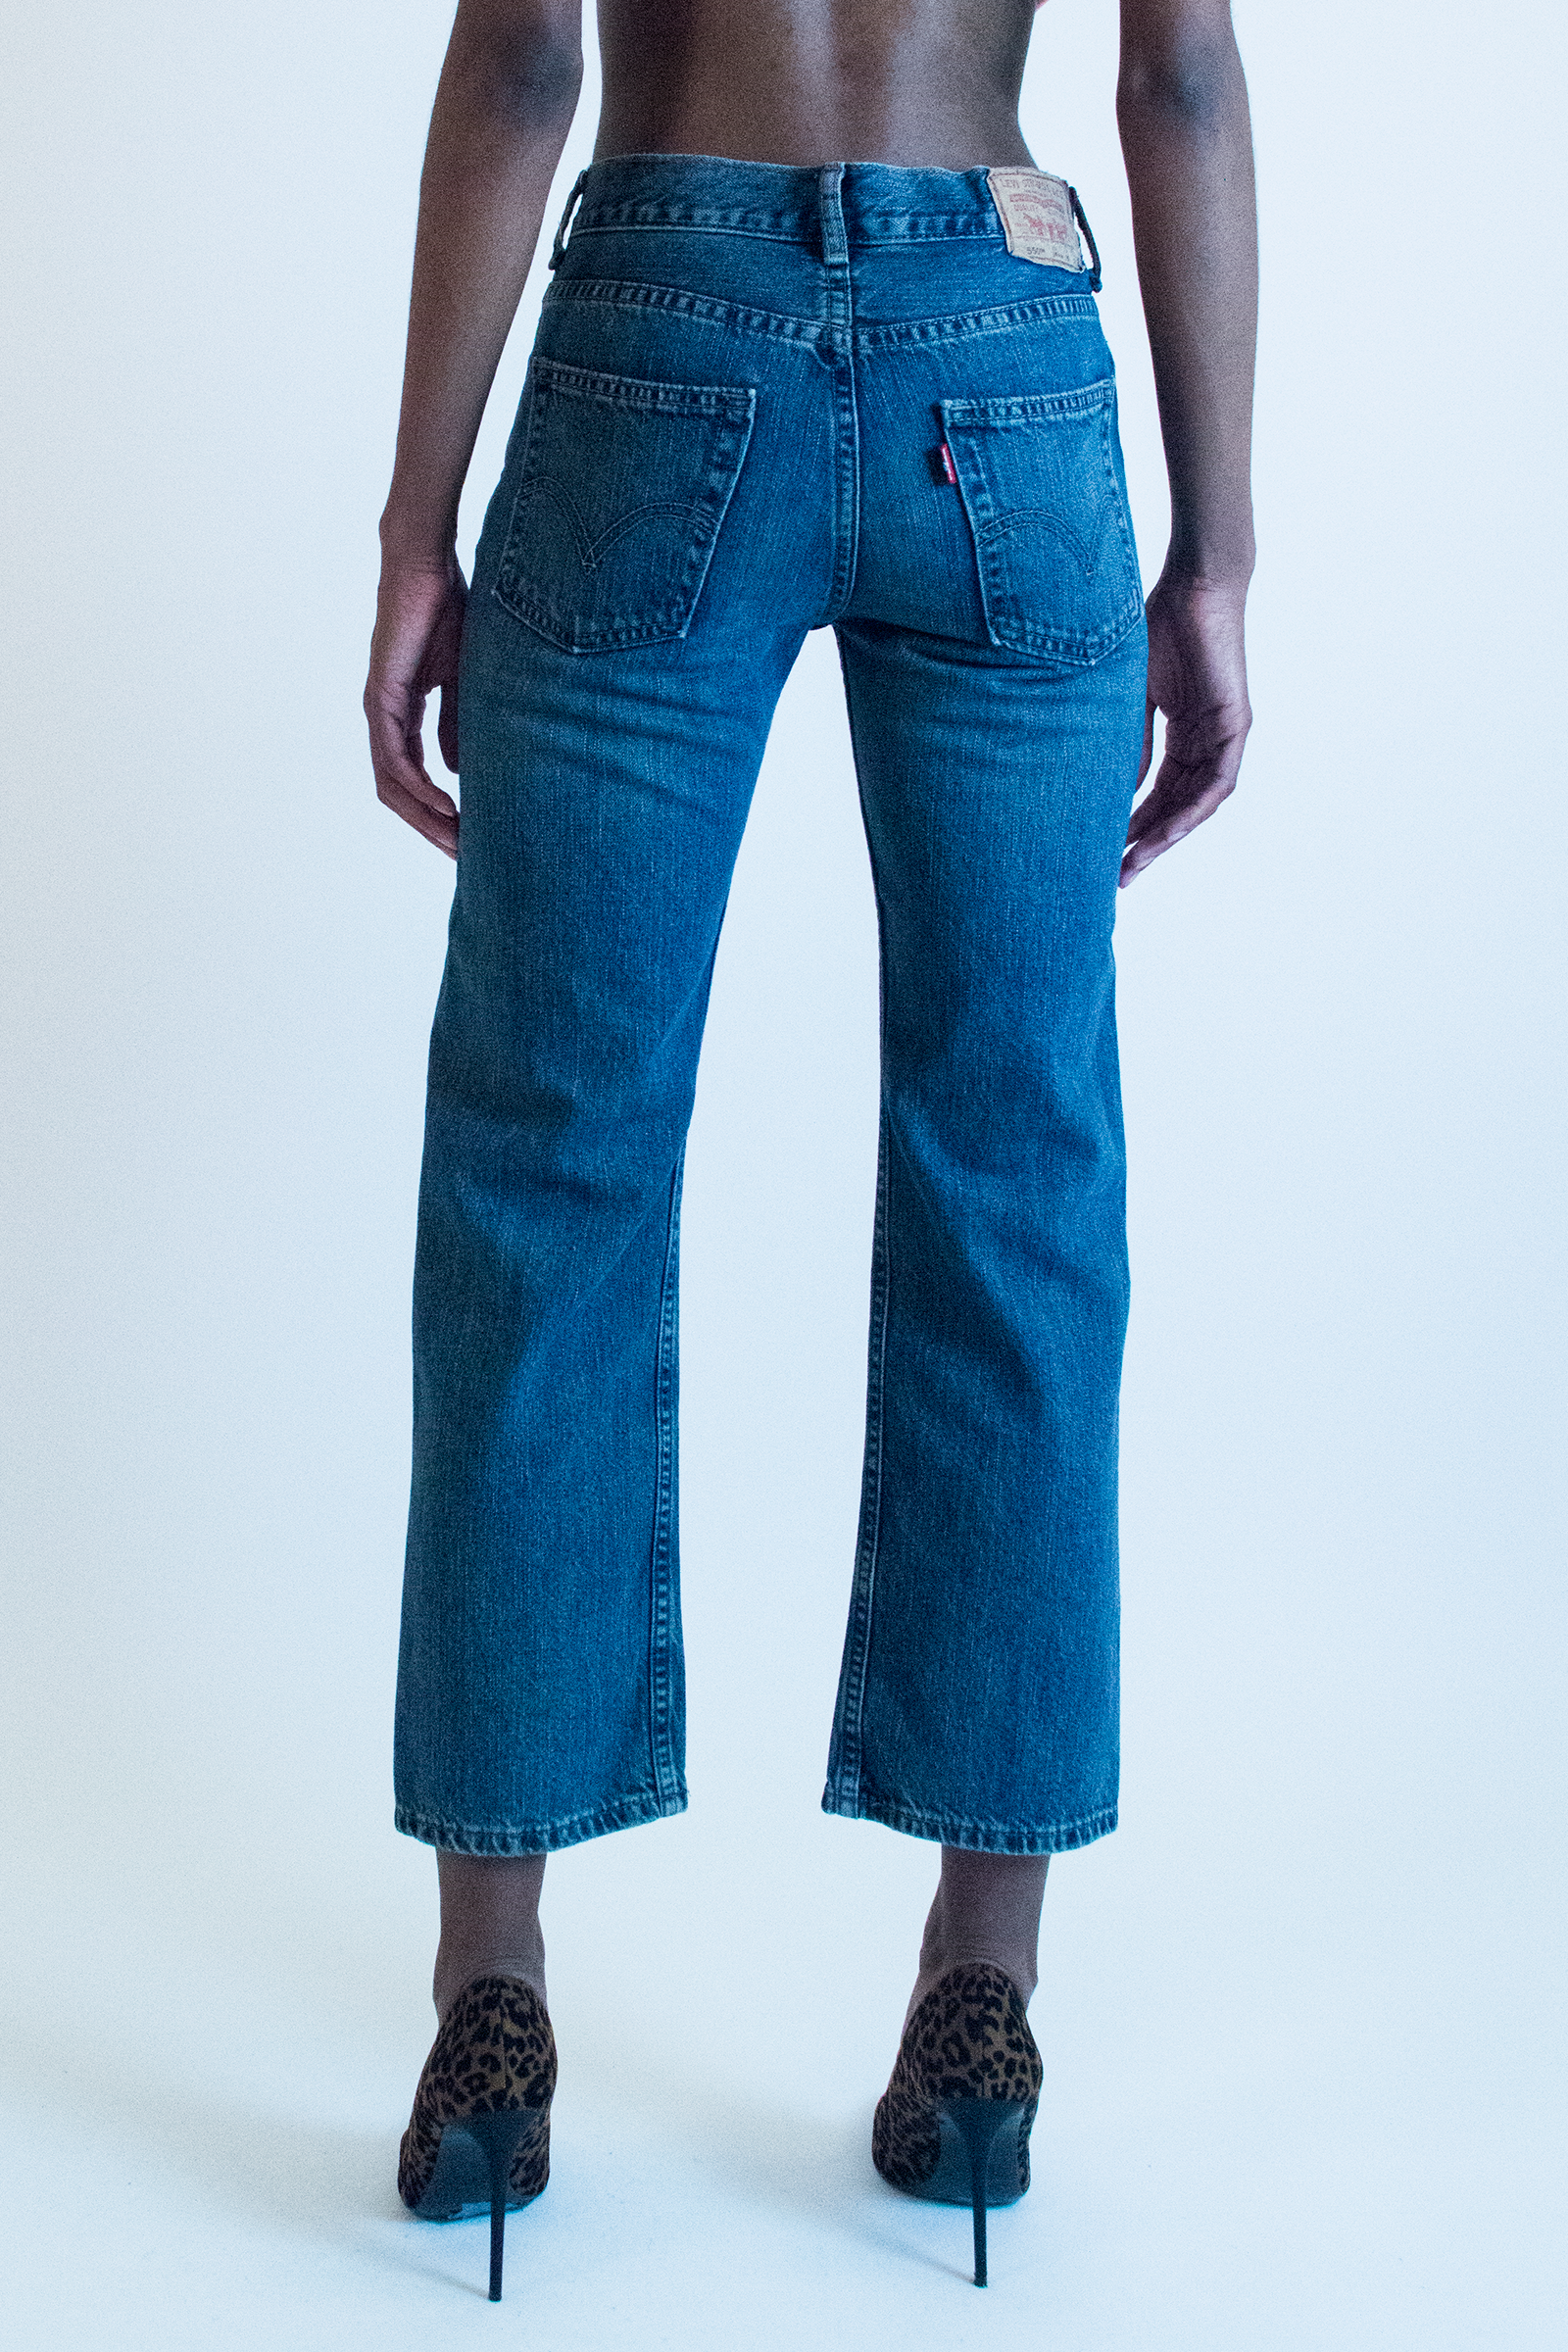 vintage cropped Levi's jean in mid-wash blue